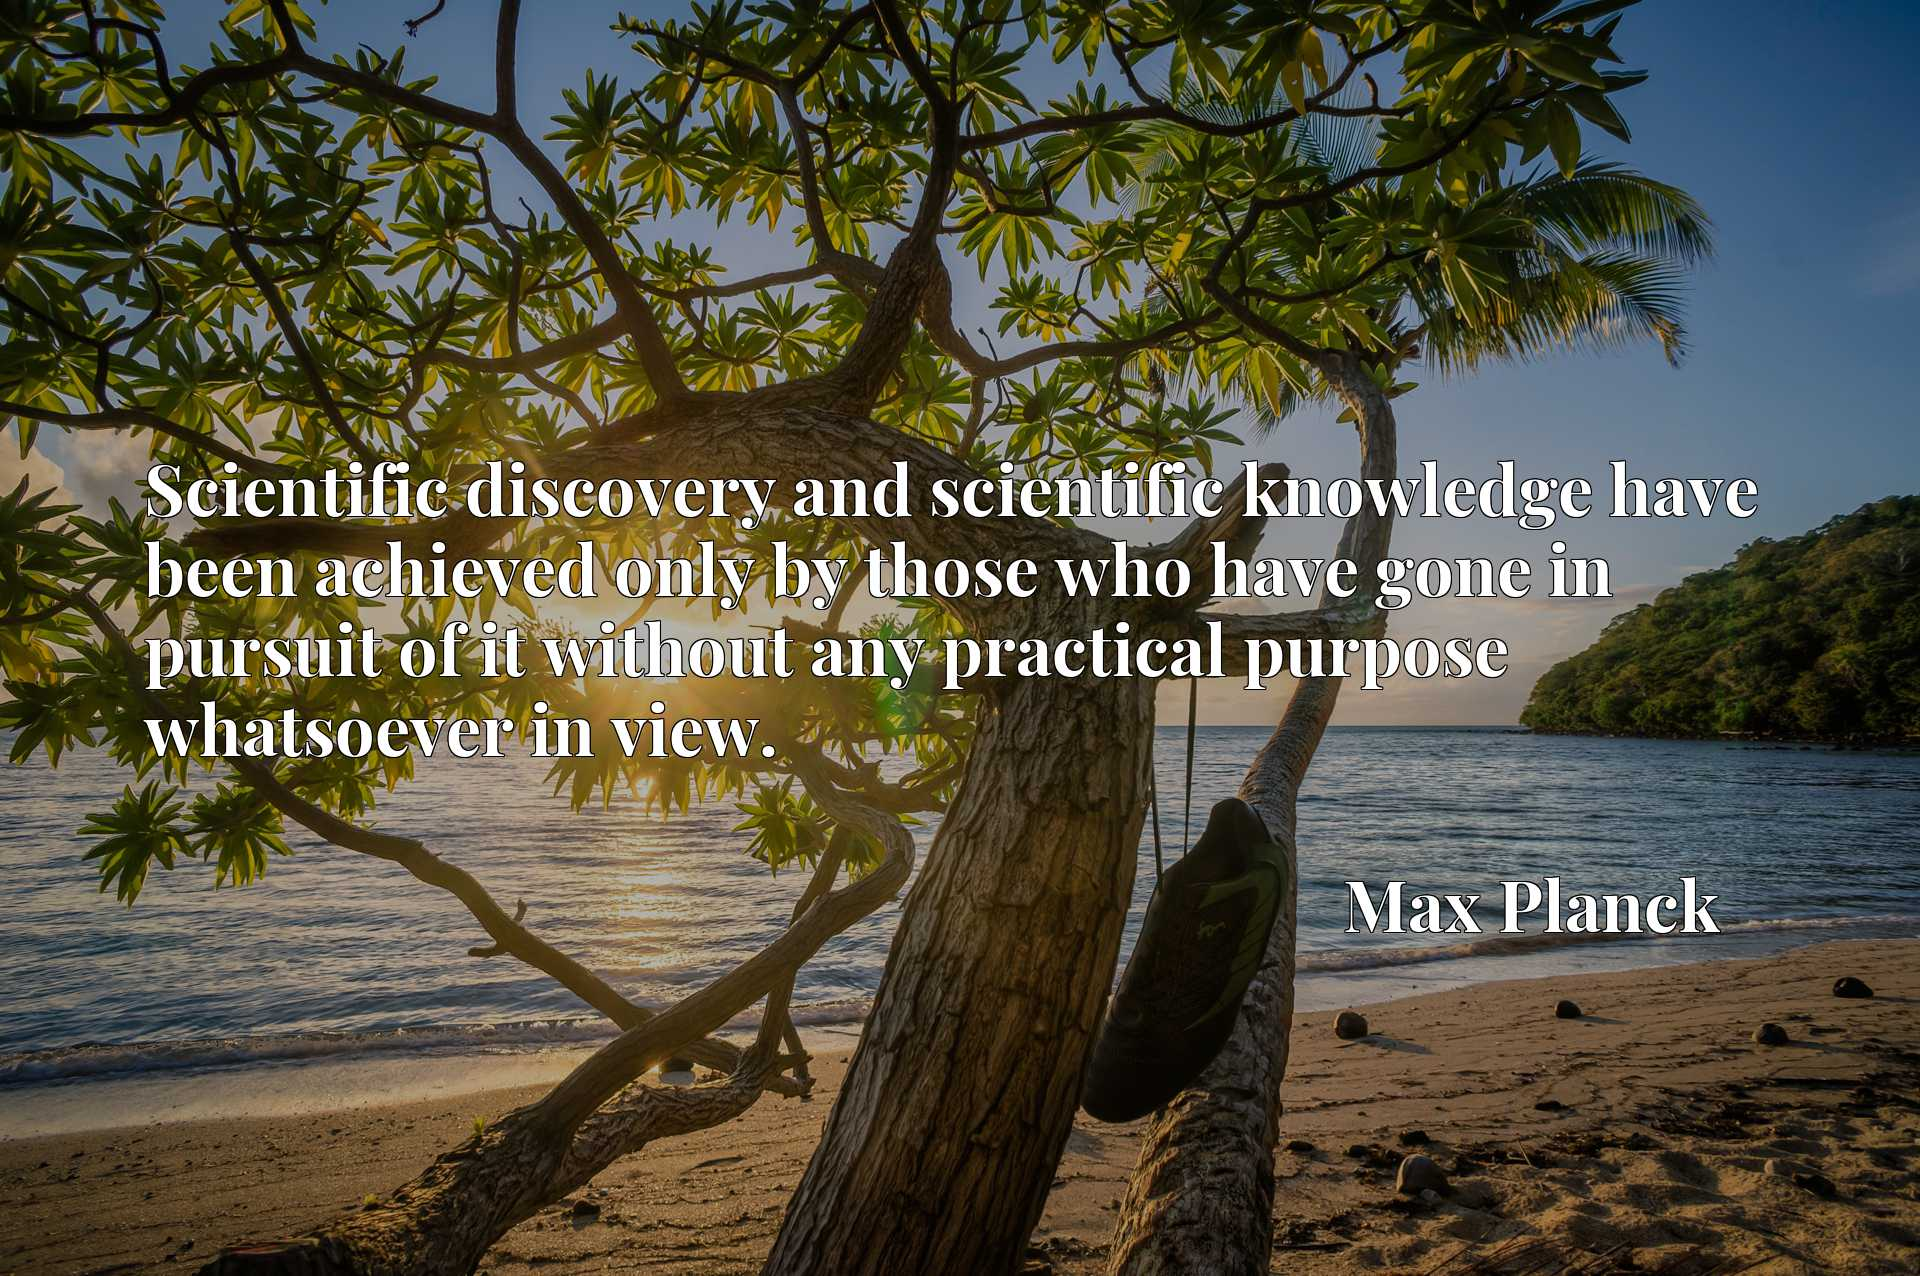 Scientific discovery and scientific knowledge have been achieved only by those who have gone in pursuit of it without any practical purpose whatsoever in view.